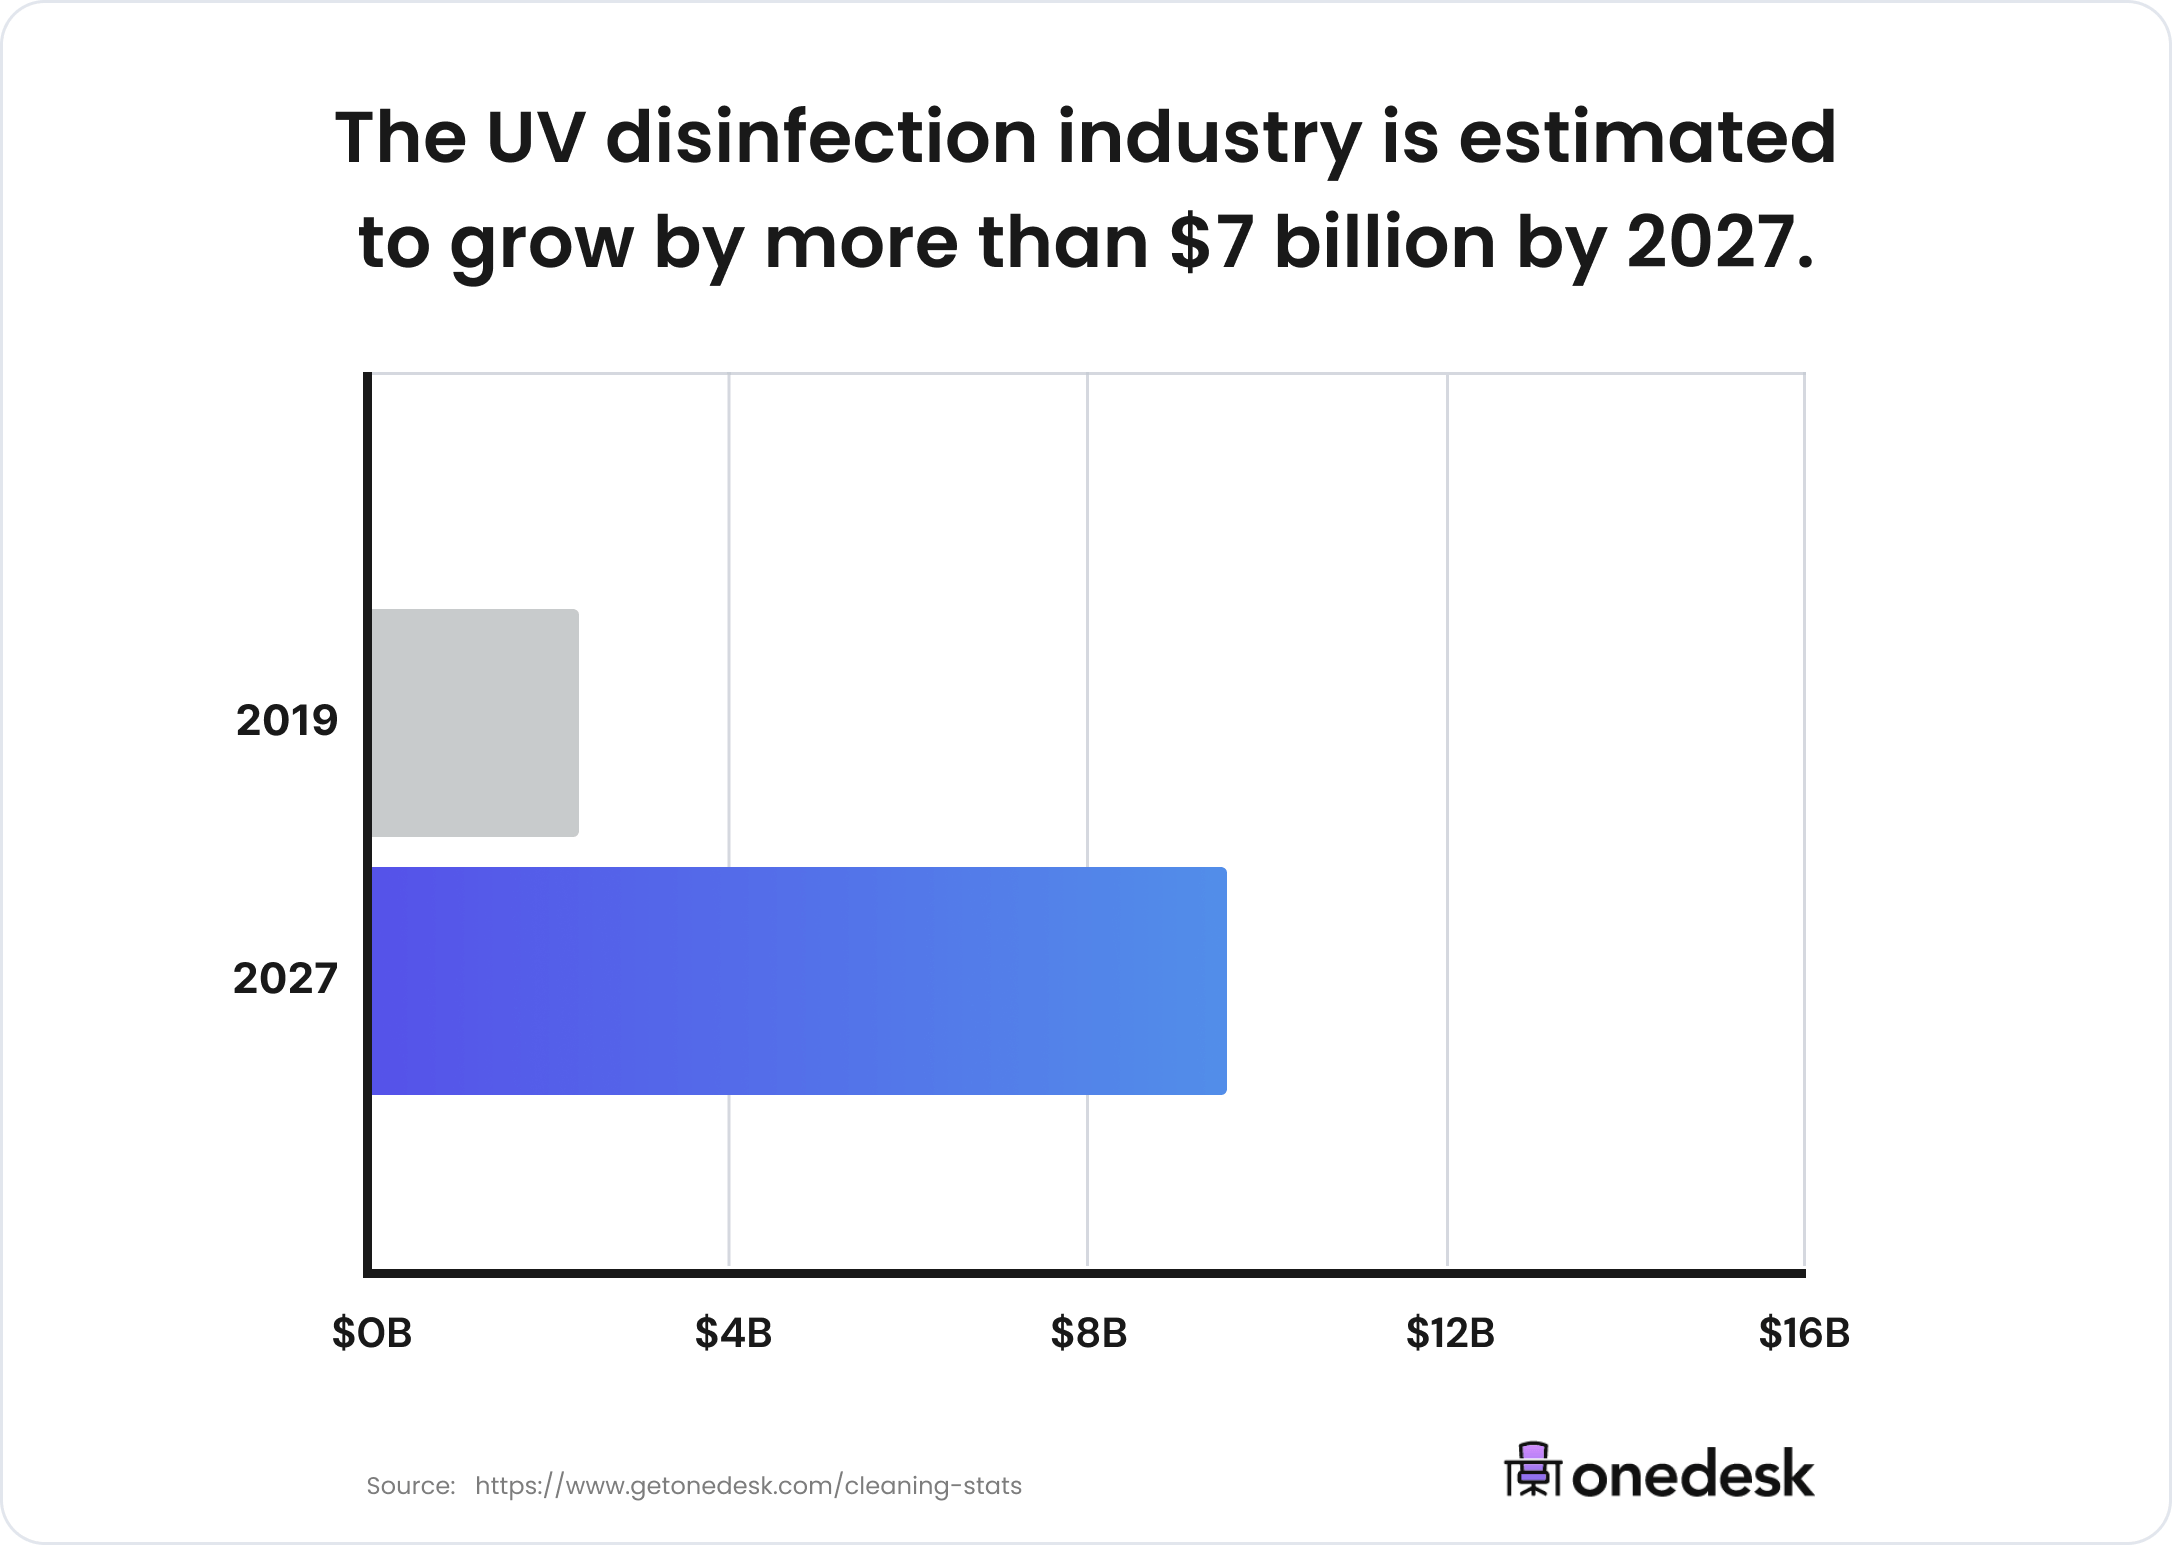 UV disinfection industry